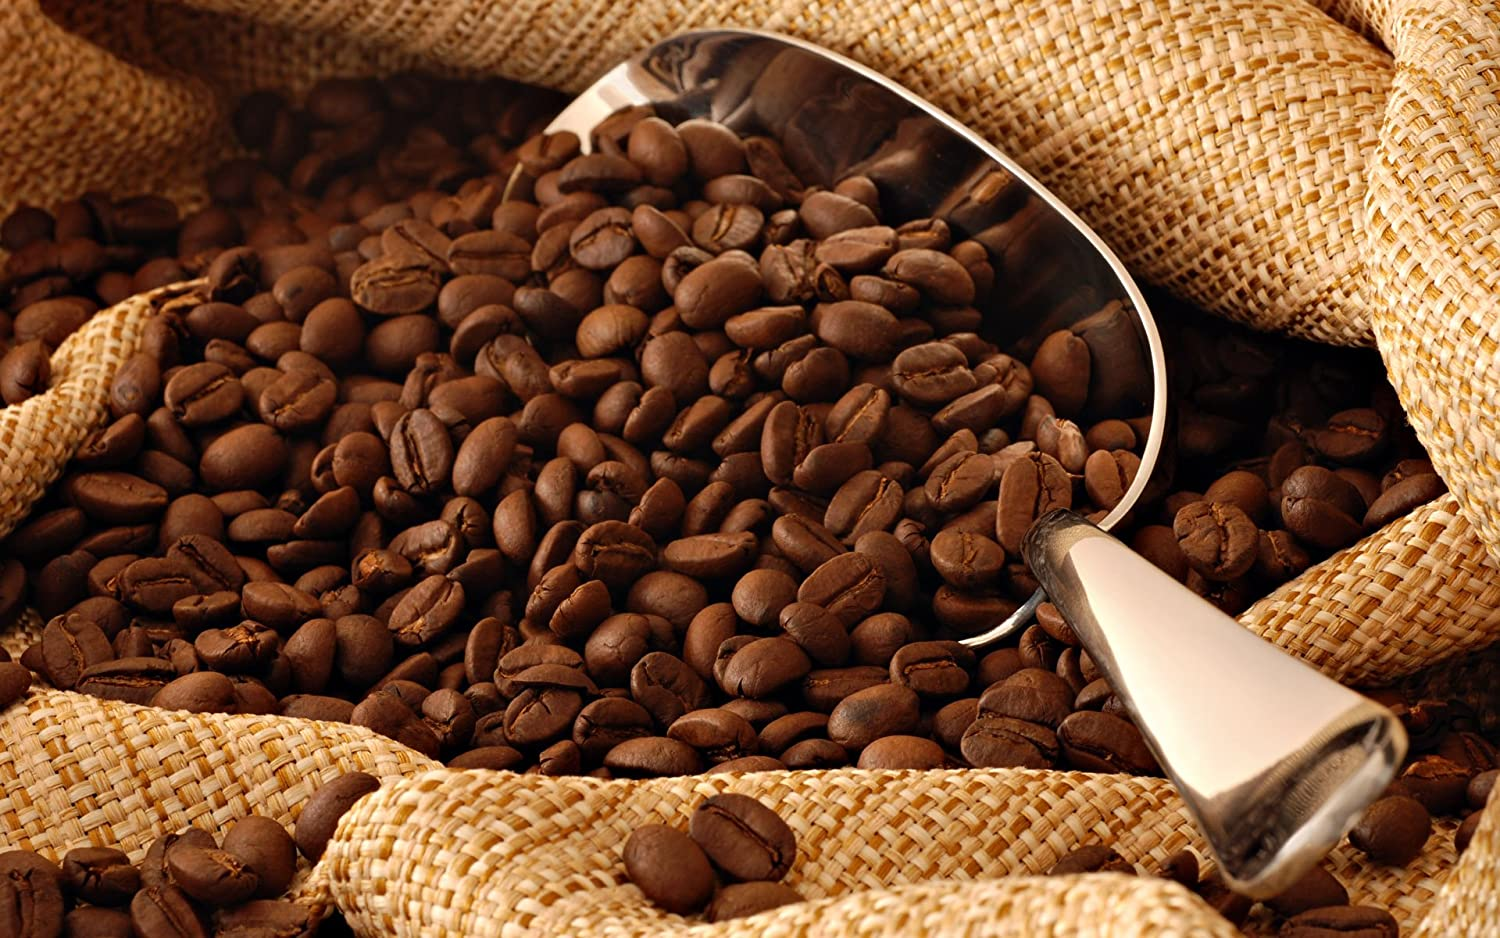 Kenya AA+ Karundul Coffee Beans Finest Auction Lot (Dark Roast (Espresso), 3 pounds Whole Beans)